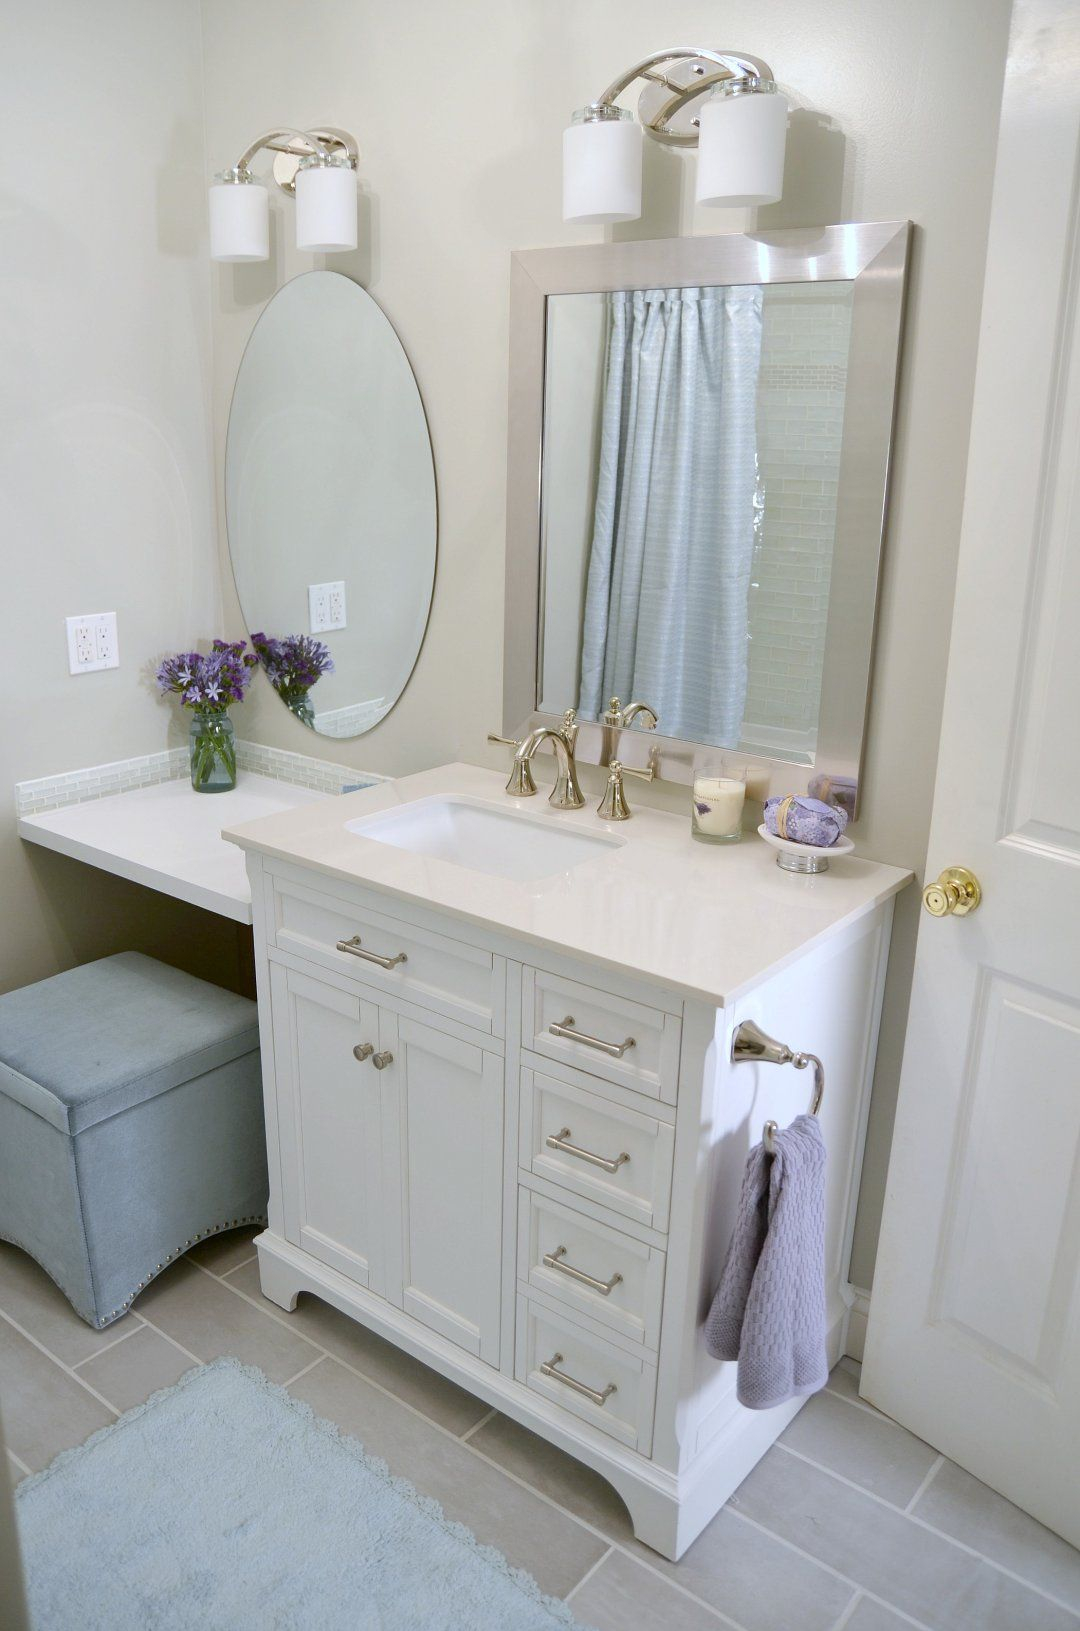 lowe s bathroom makeover reveal yo lowes bathroom bathroom sink rh pinterest ca